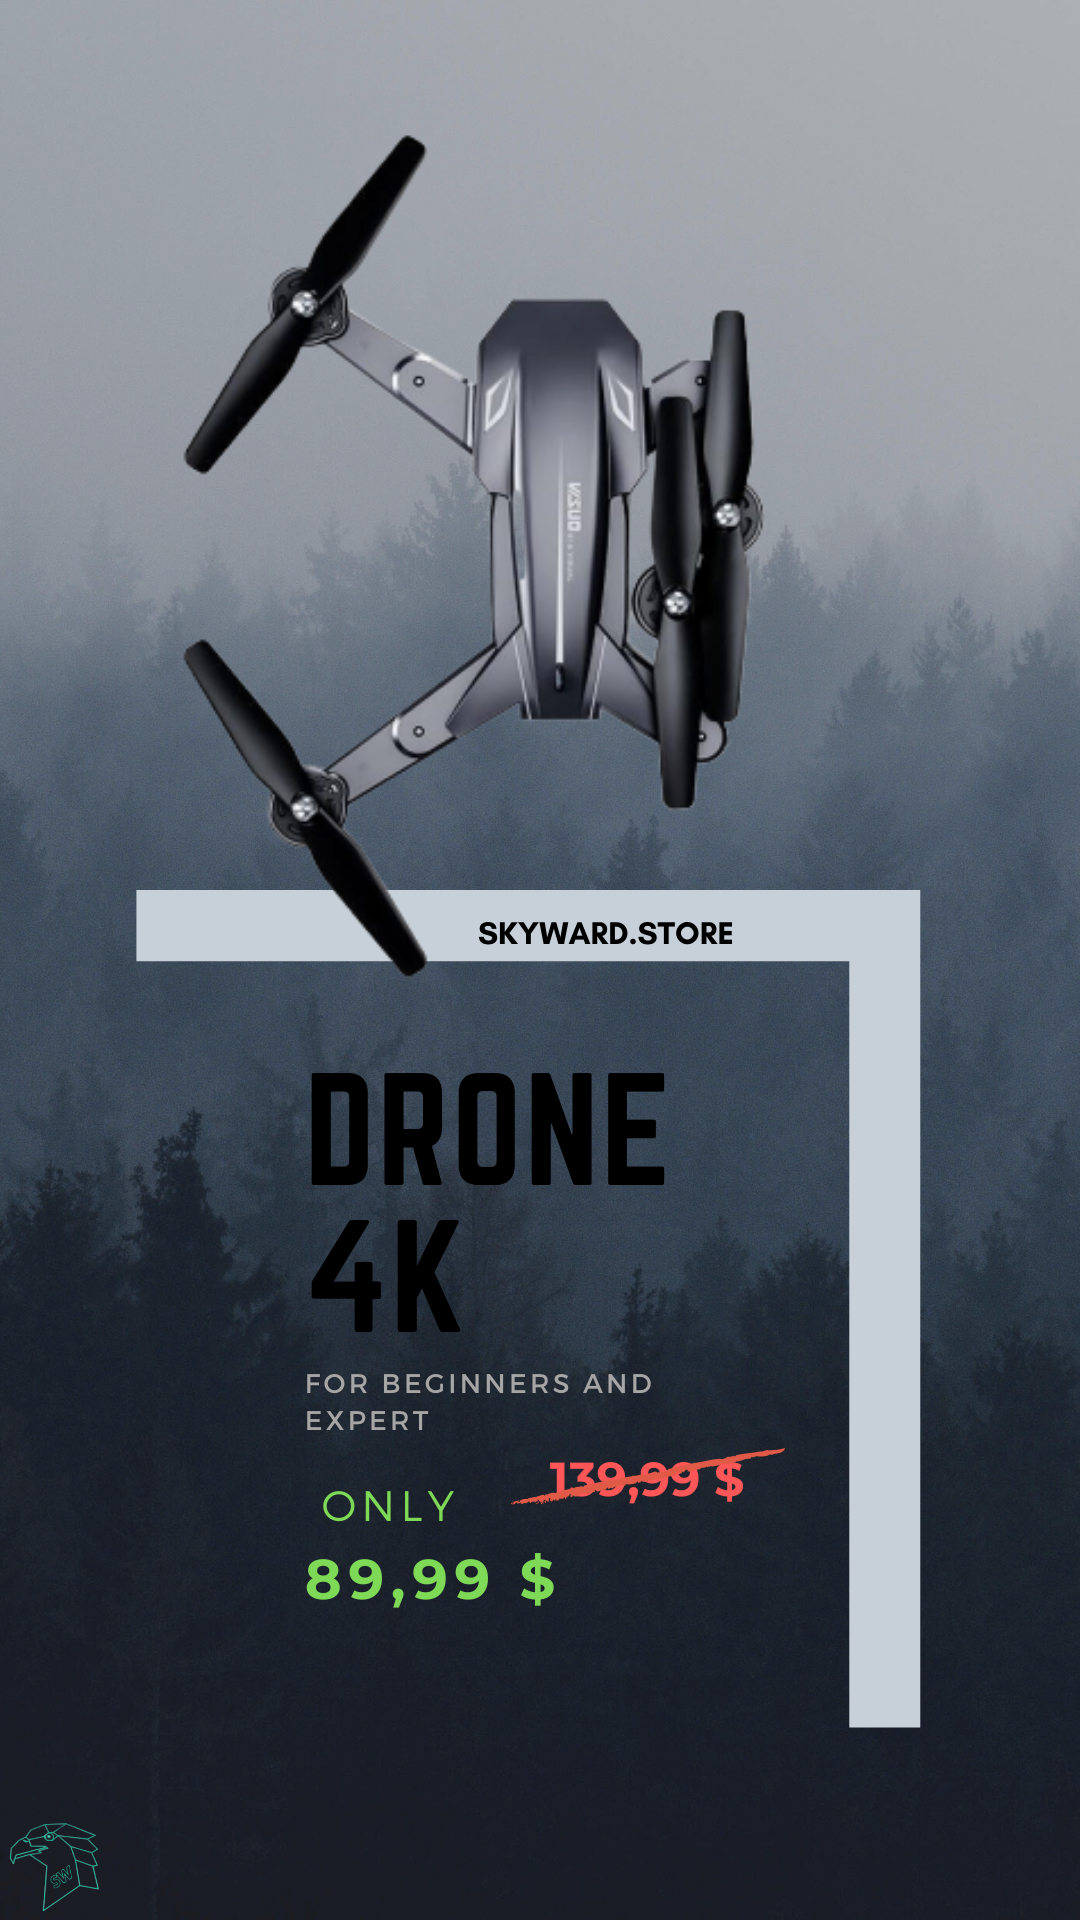 Drone with dual camera in 4k